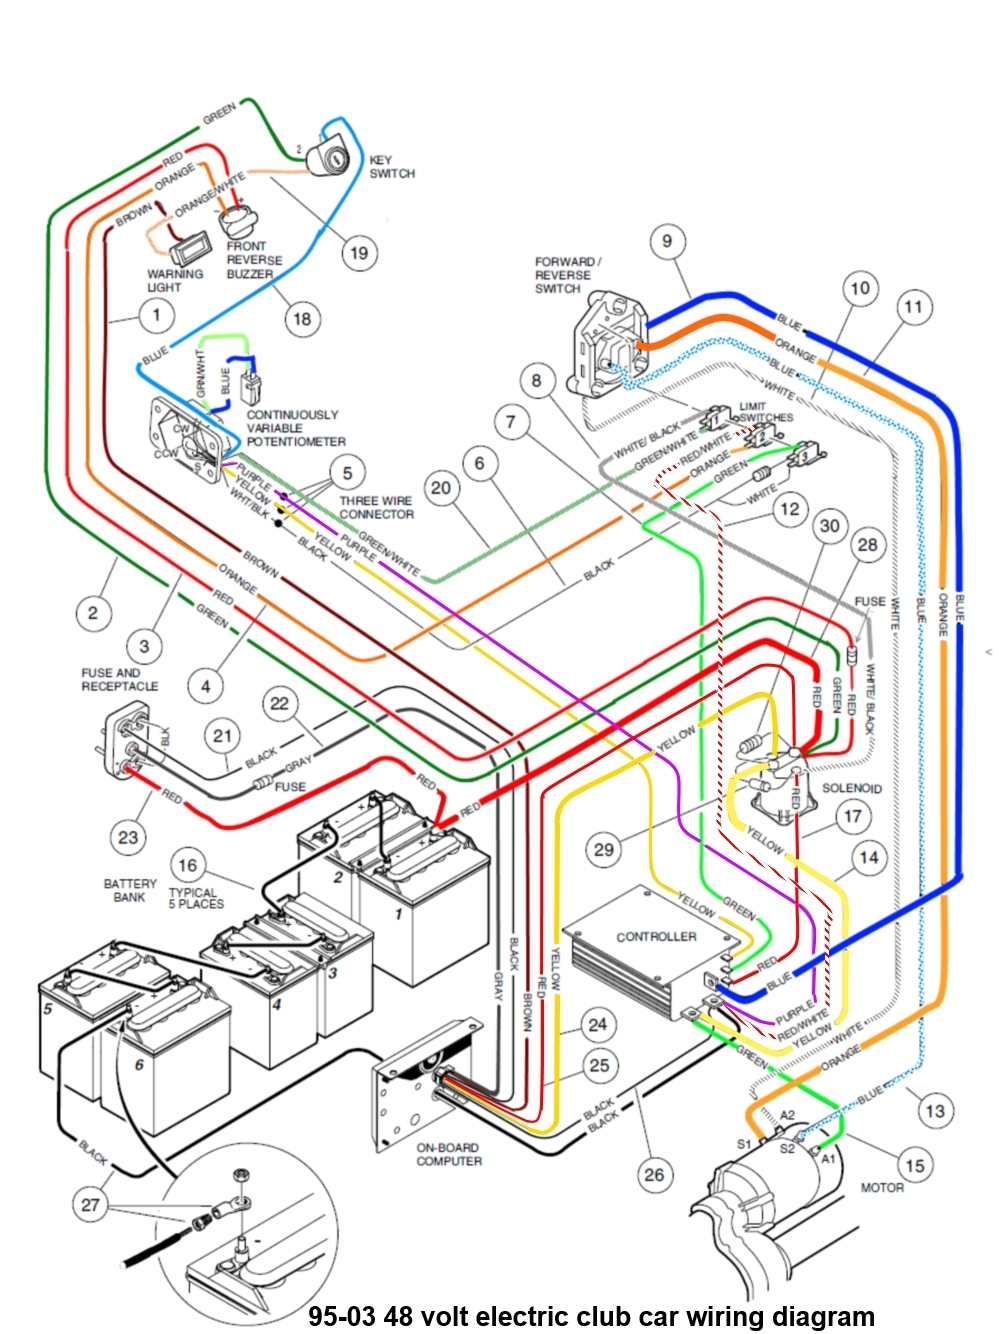 ingersoll rand club car wiring diagram and wiring diagram for 1999 pertaining to club car golf cart parts diagram ingersoll rand club car wiring diagram ingersoll rand golf carts wiring diagram at bayanpartner.co